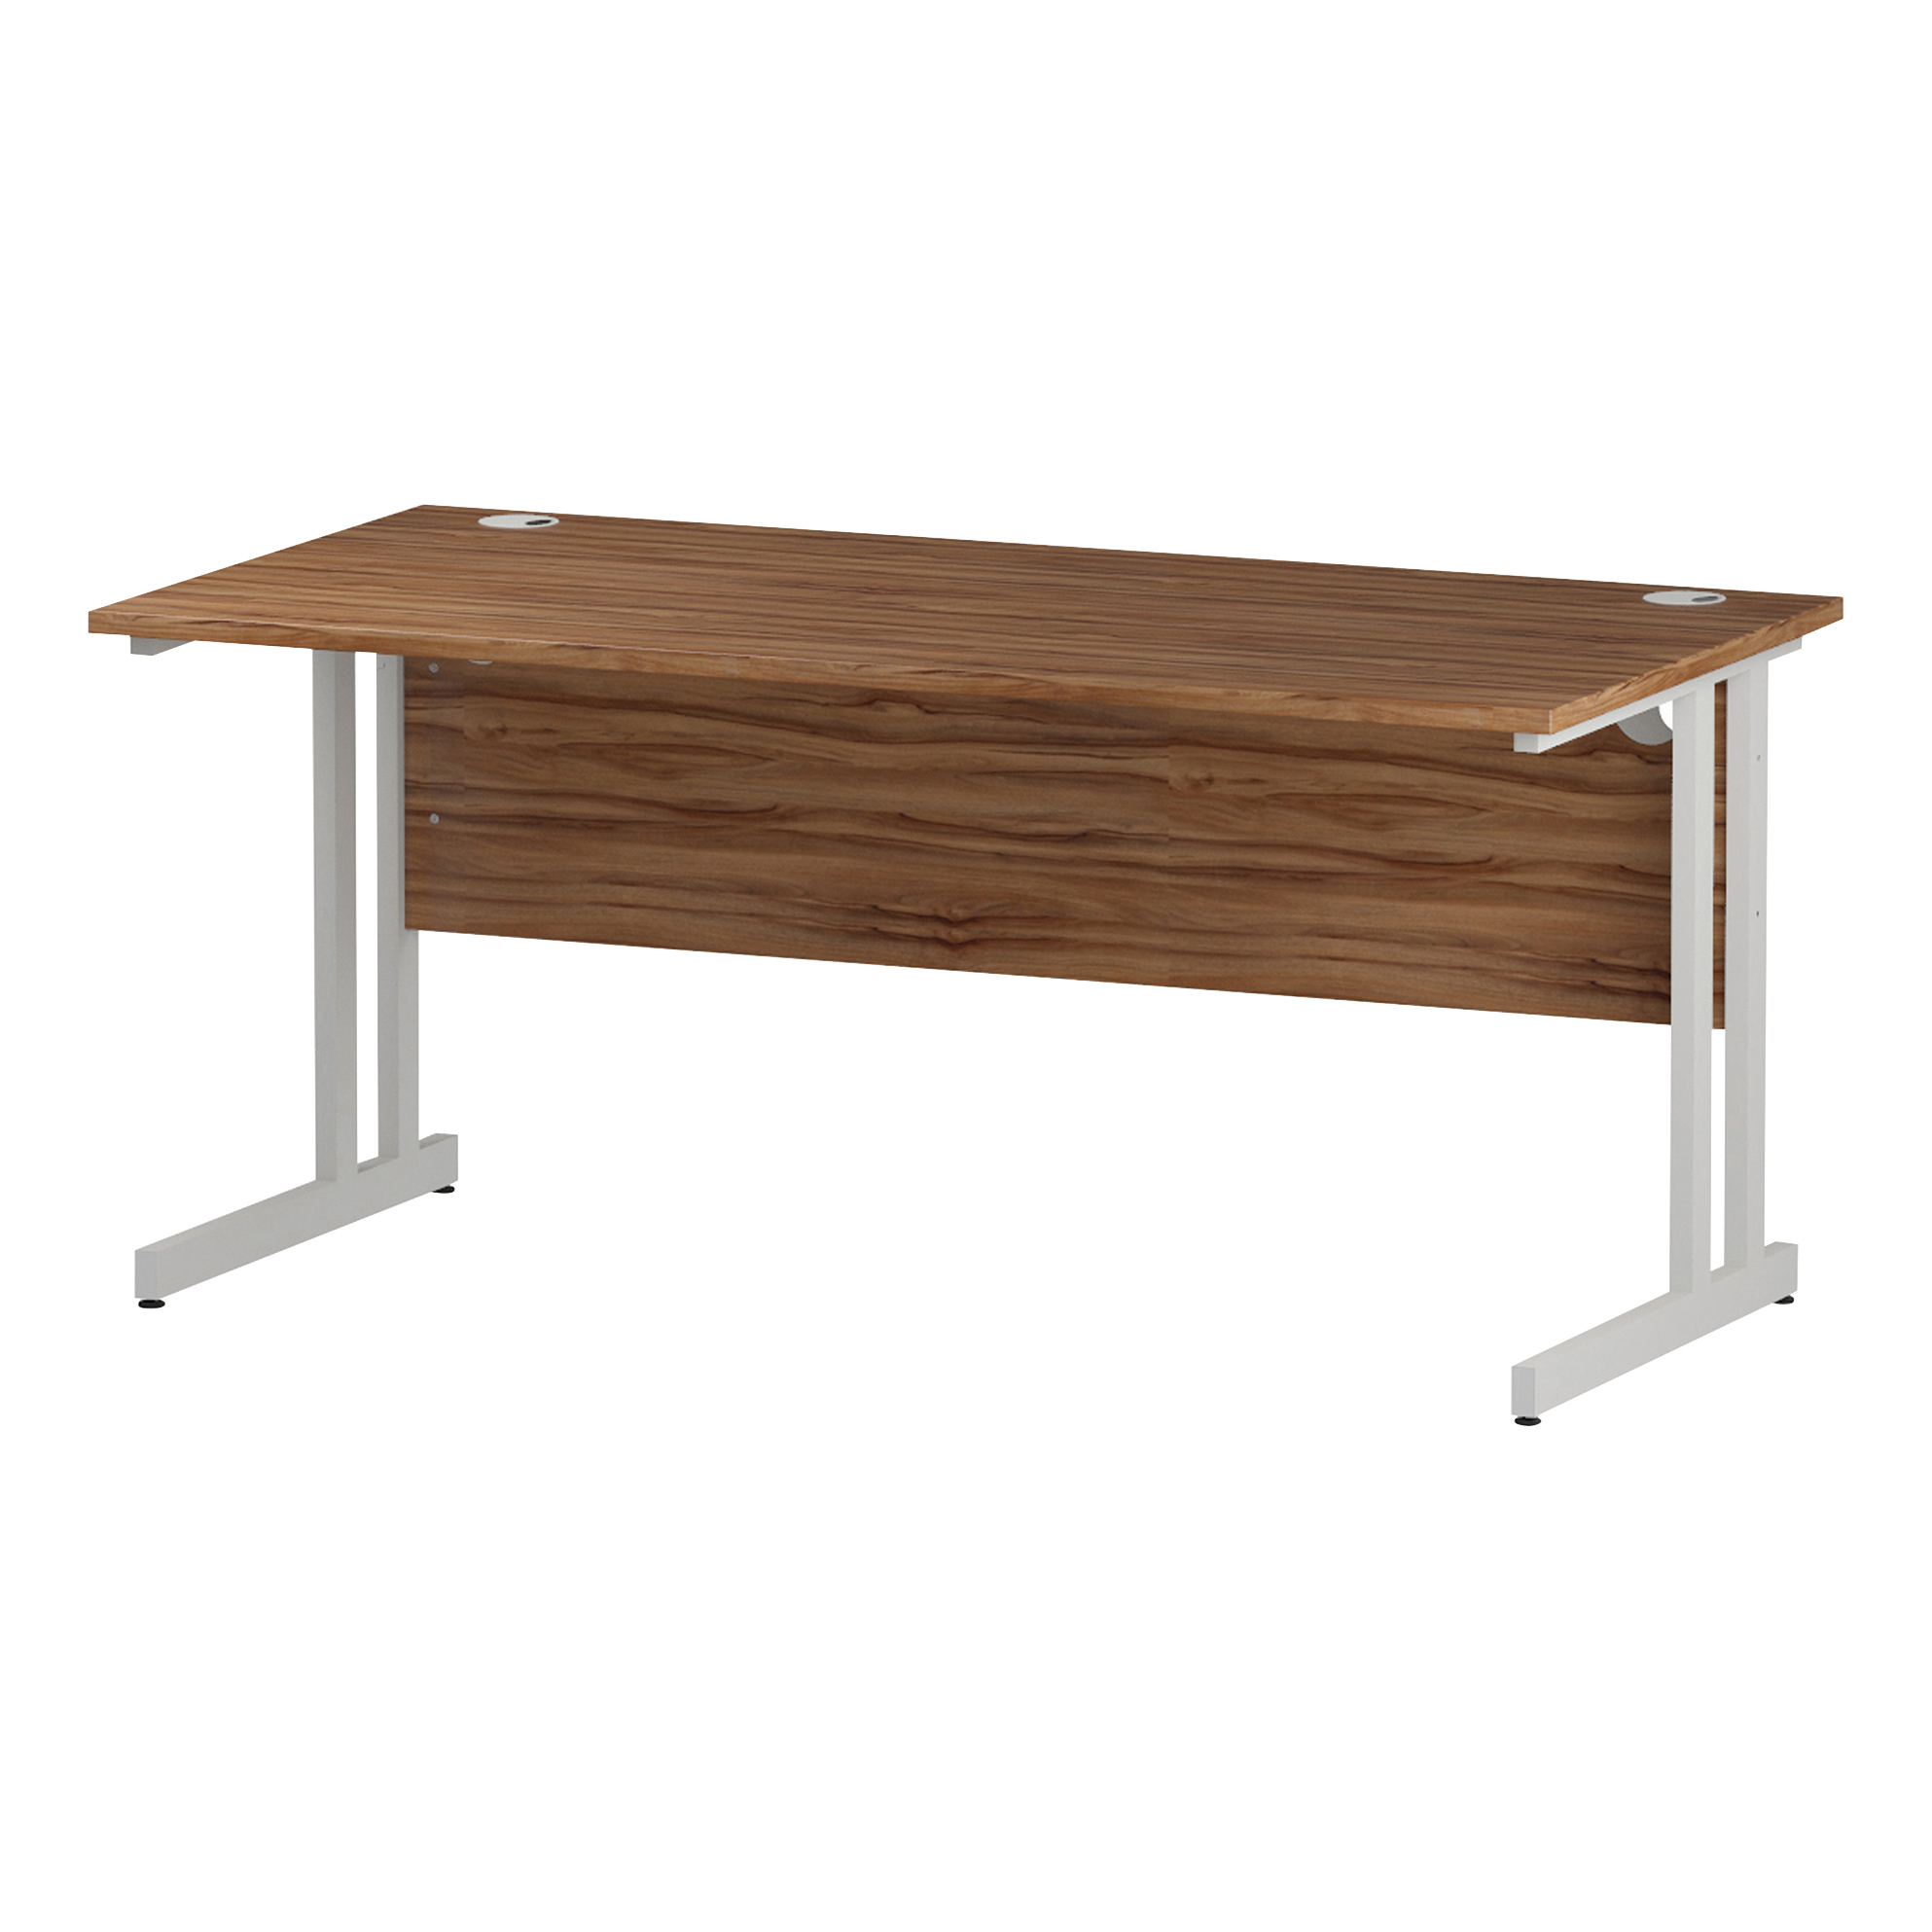 Trexus Rectangular Desk White Cantilever Leg 1600x800mm Walnut Ref I001907